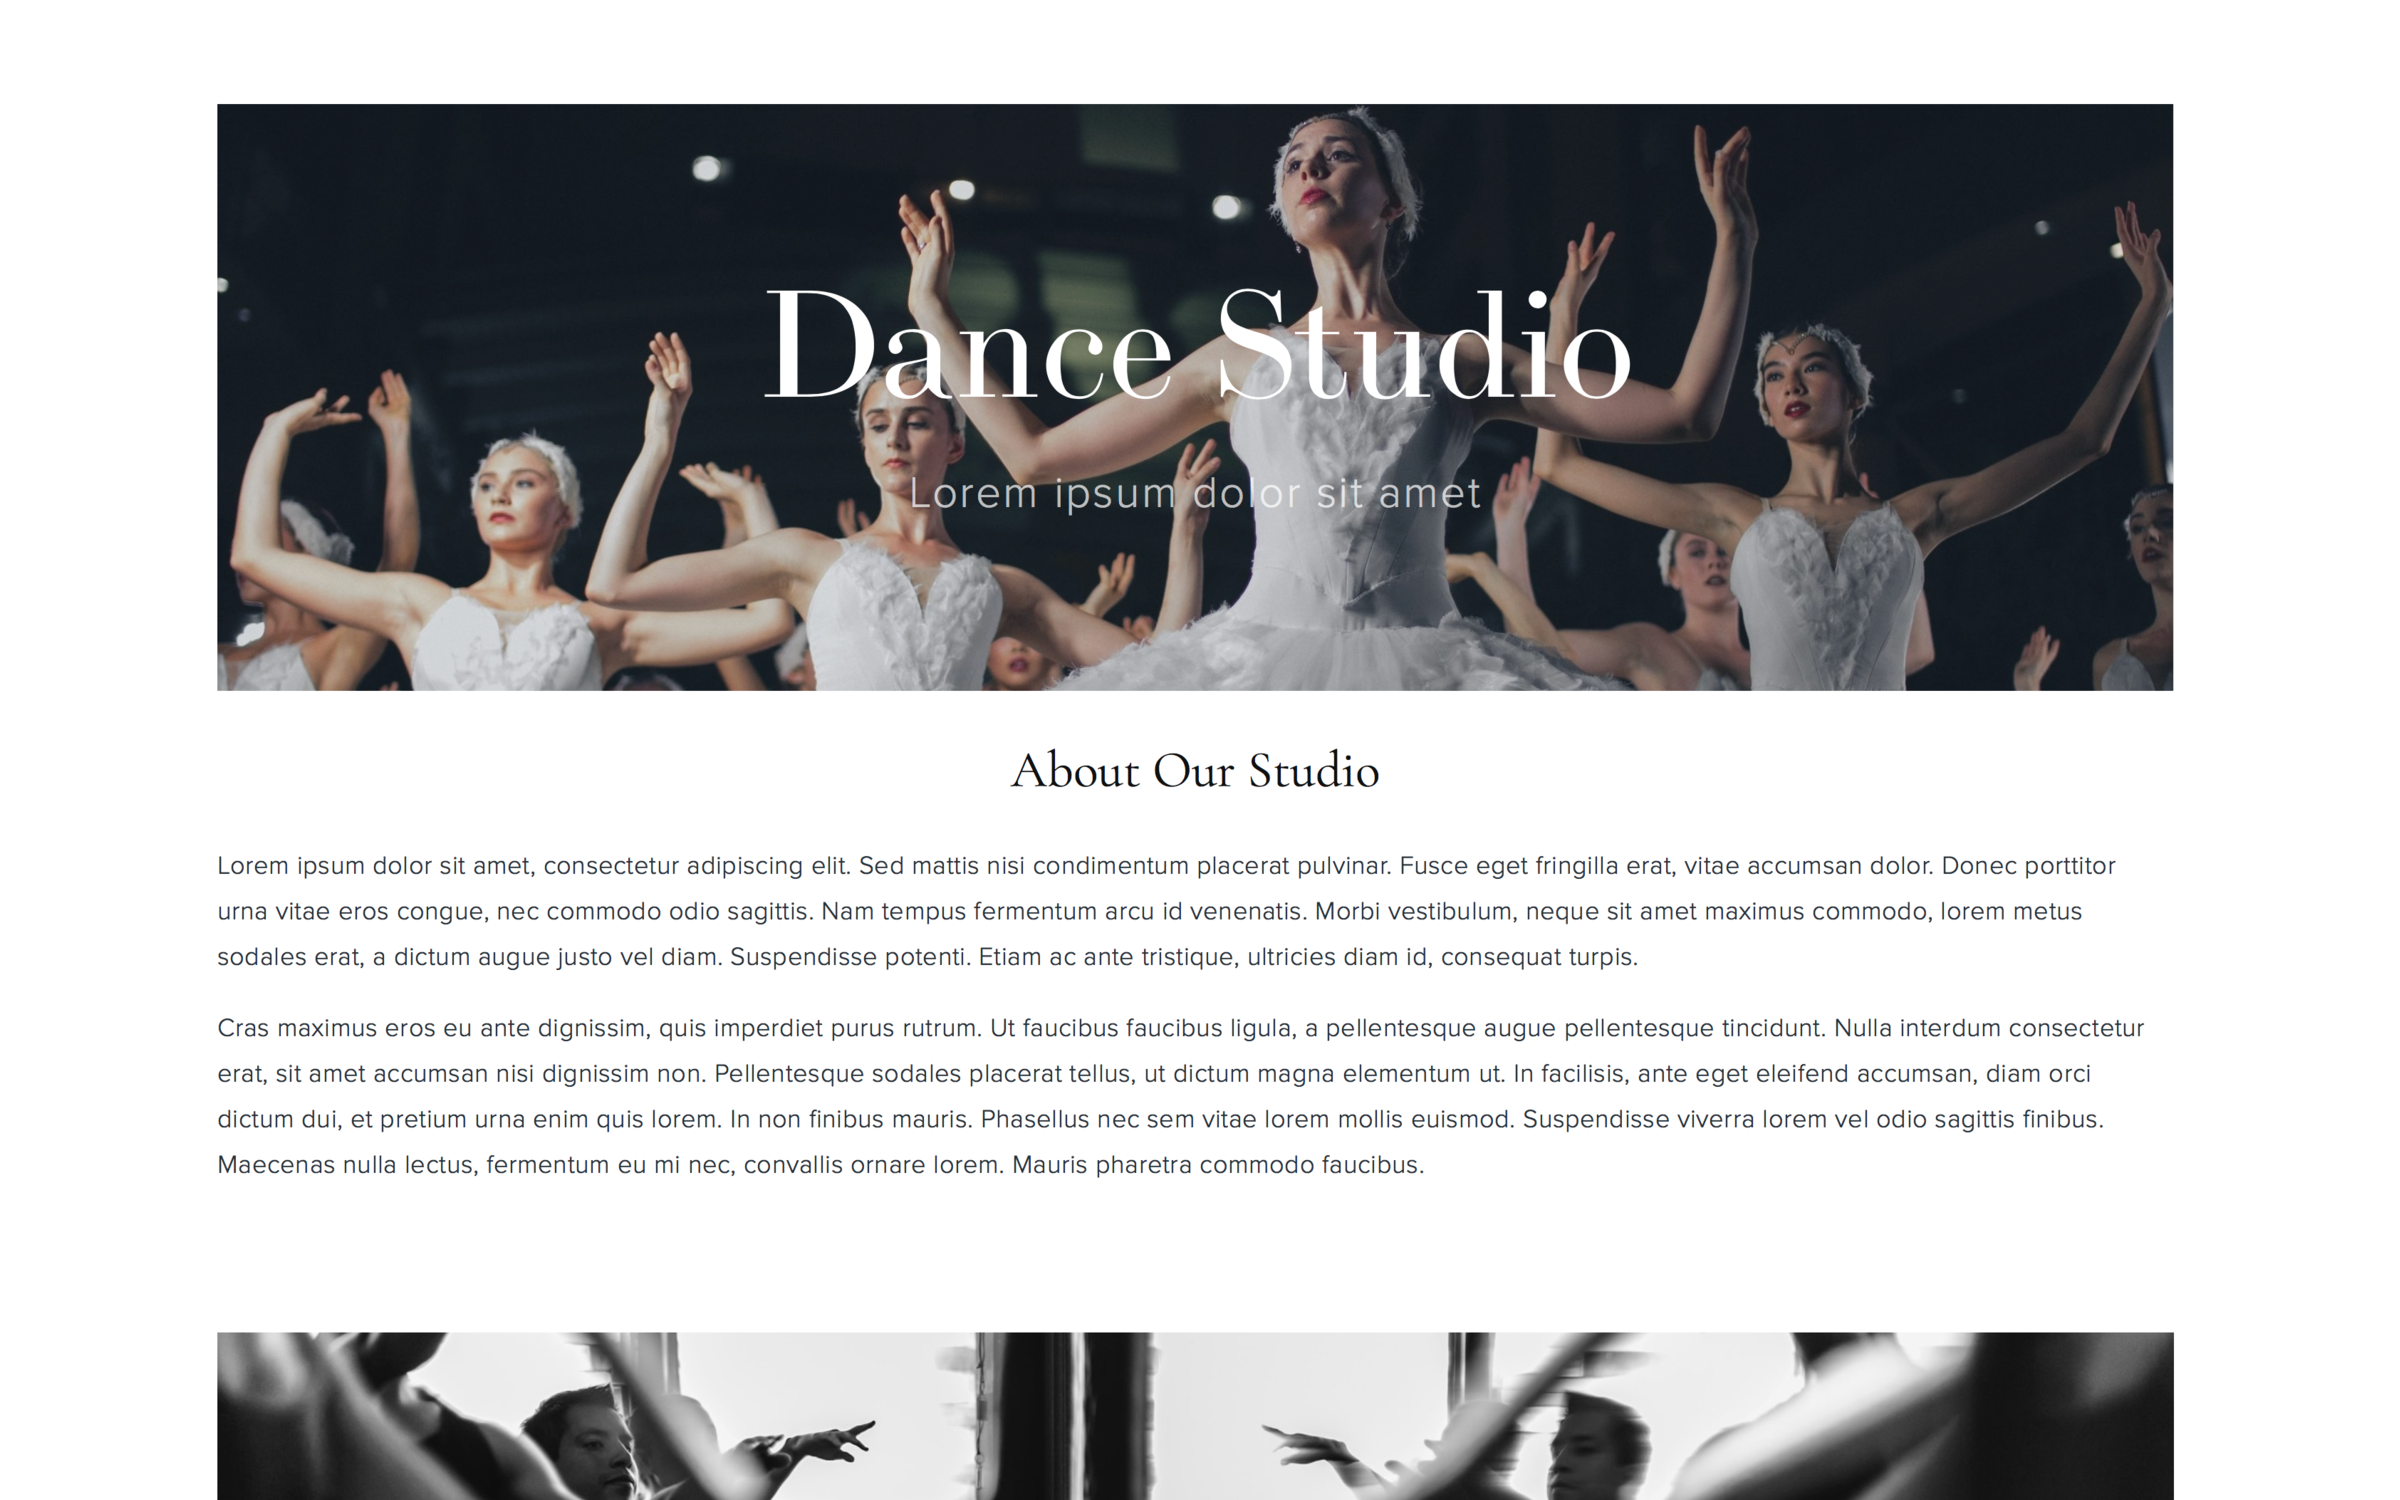 studio homepage design 2 - view demo